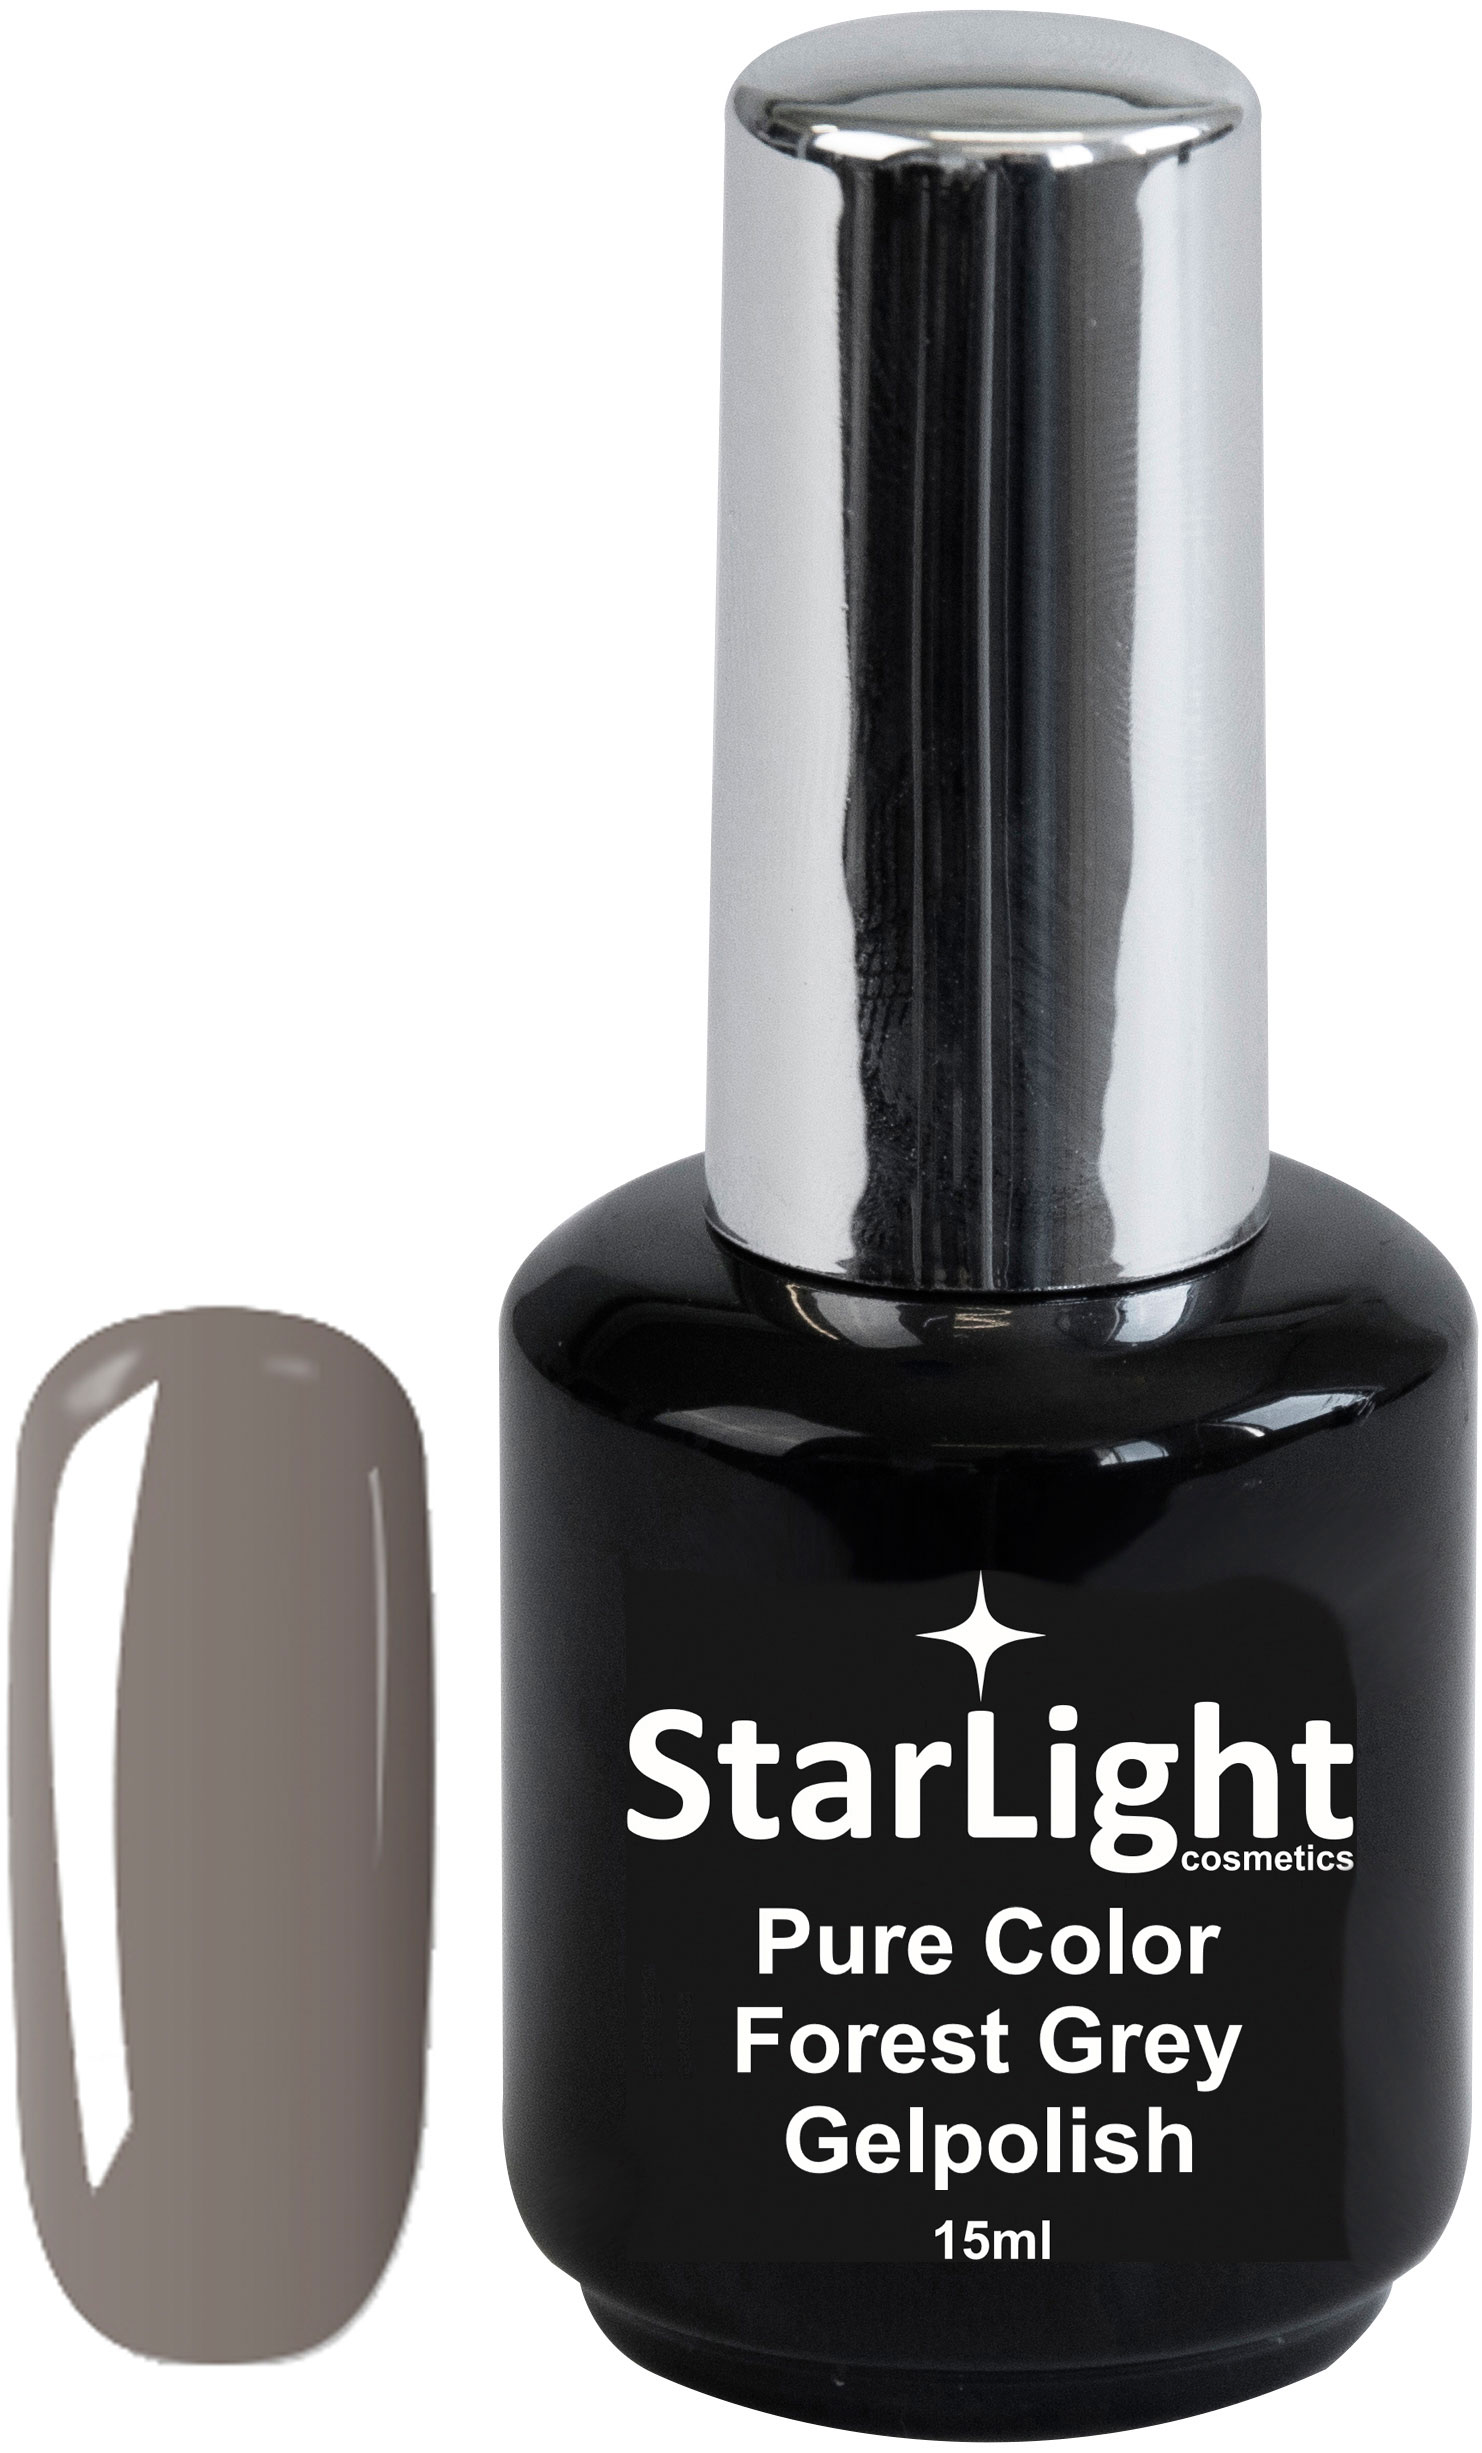 Naglar Gelpolish Pure Color Forest Grey - 15 ml